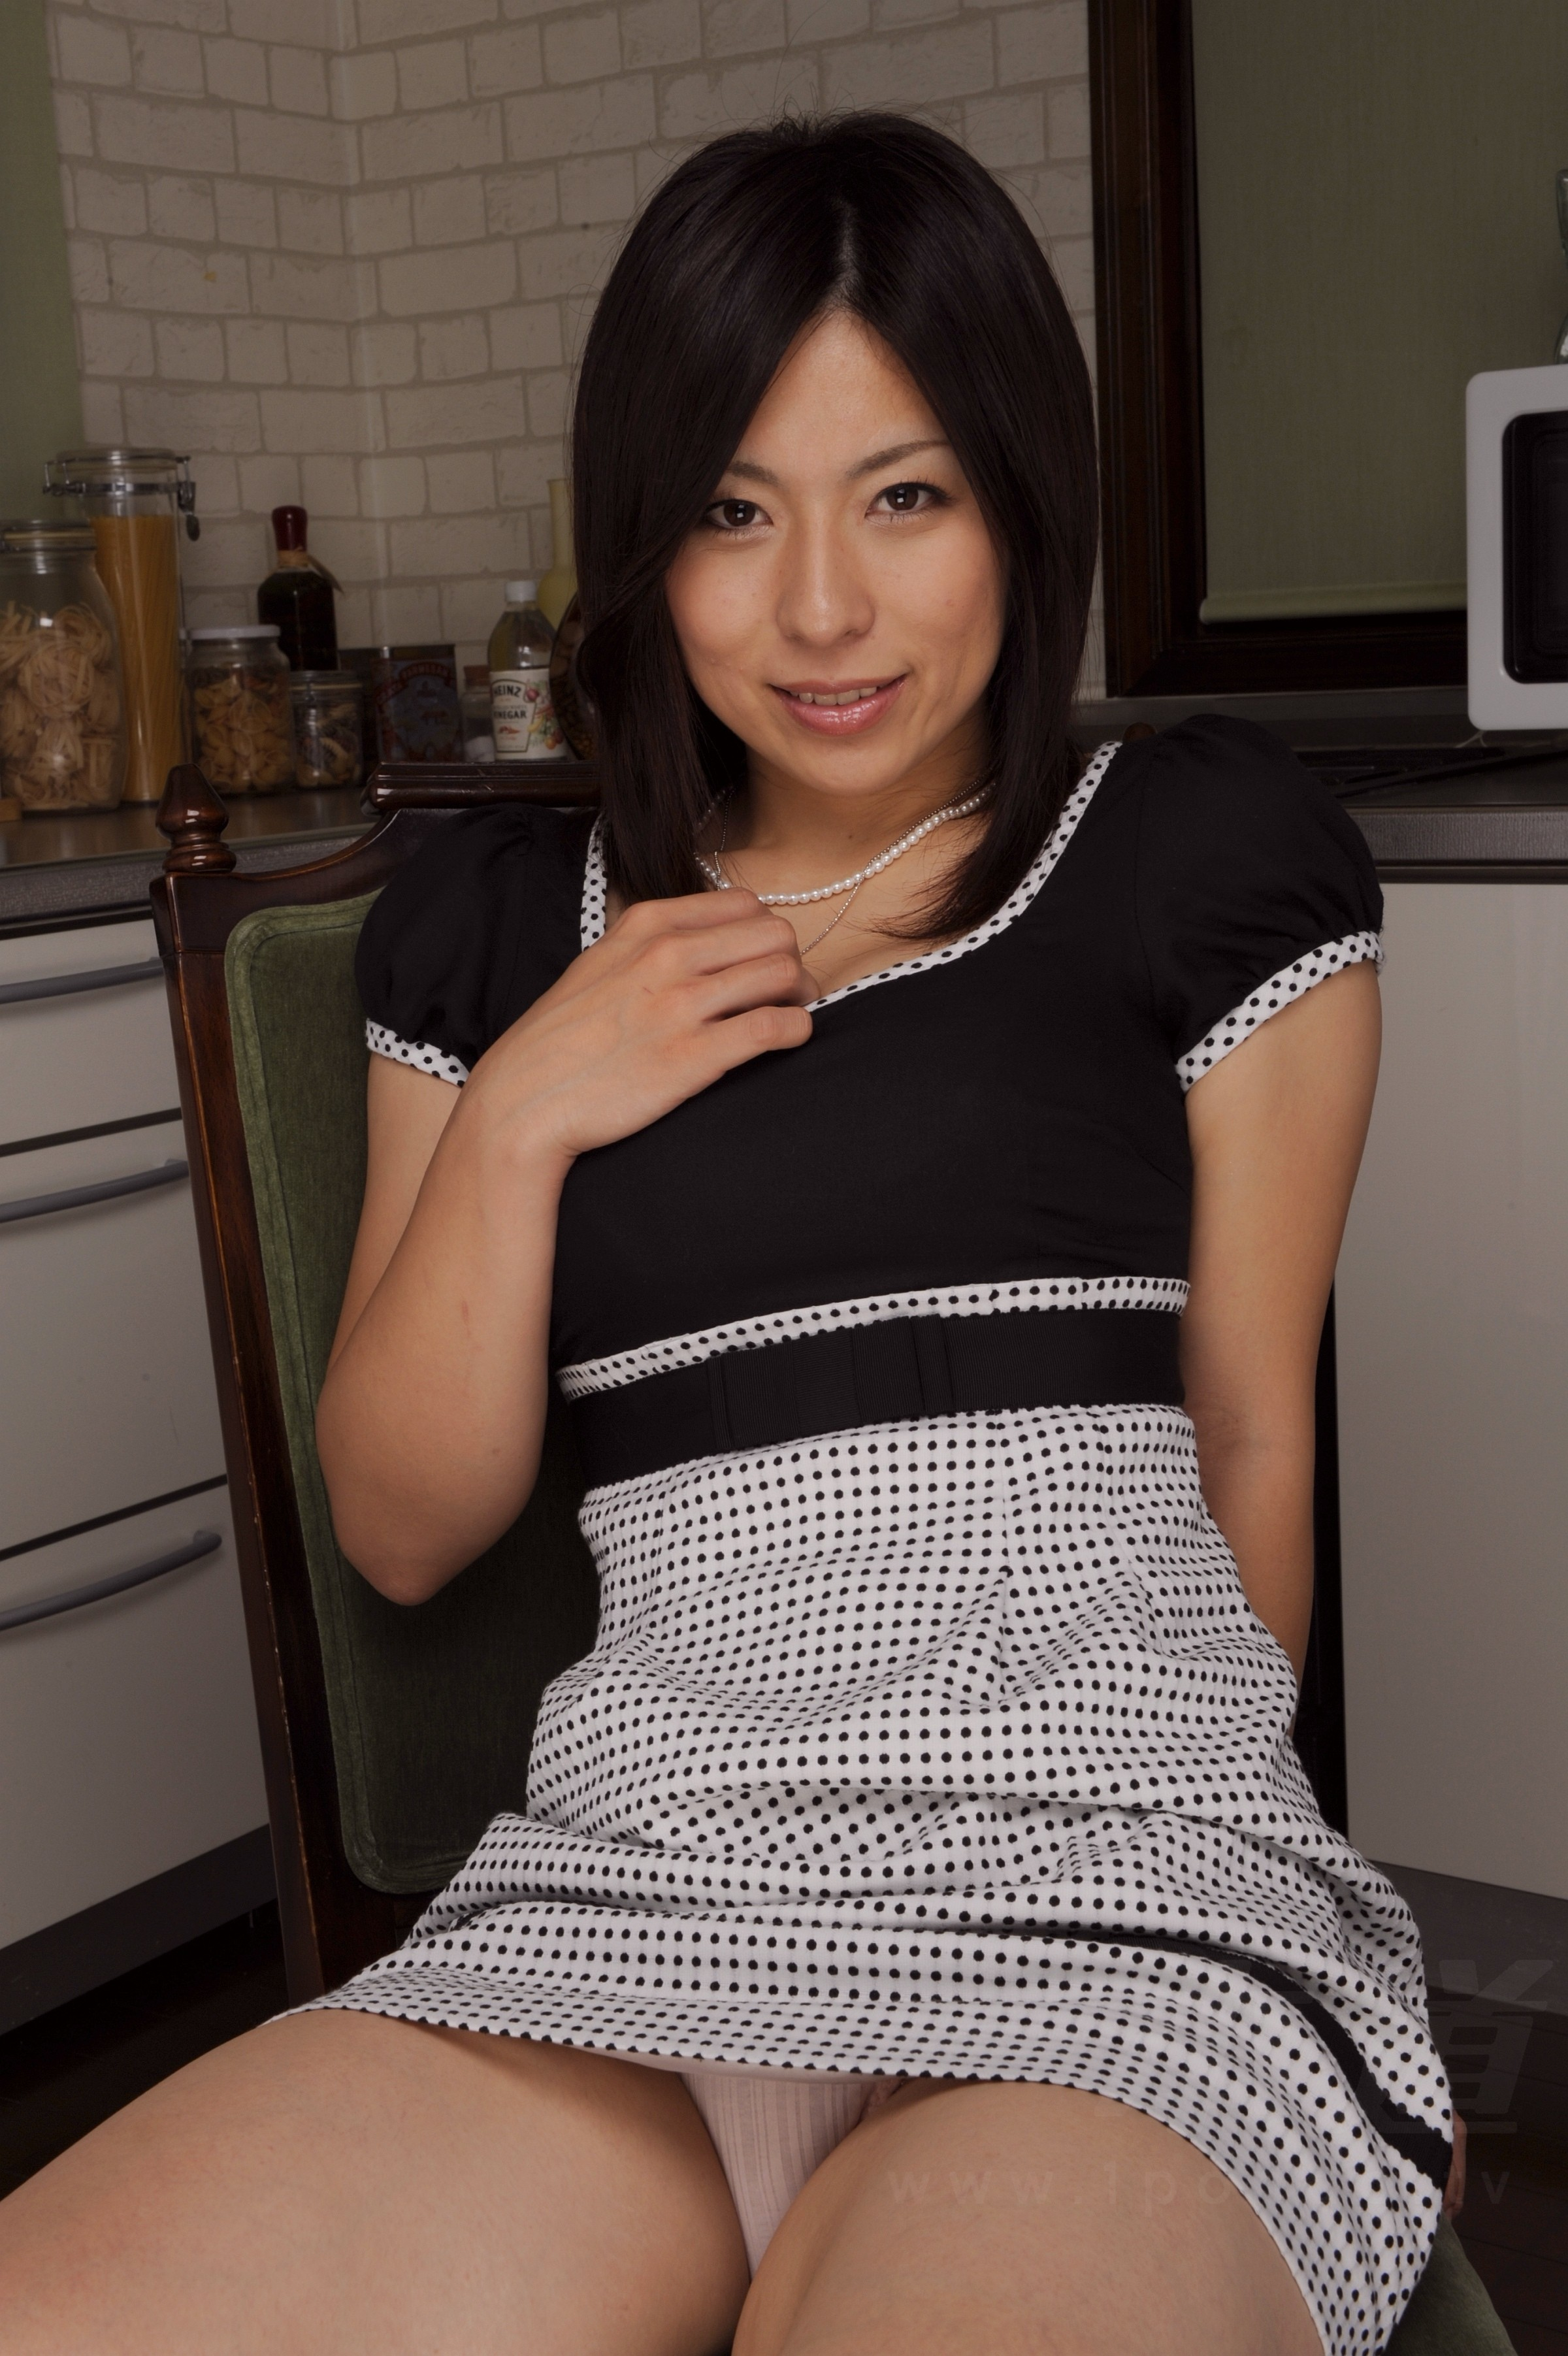 cz-3-sdms806-japanese-girl-pussy-wal#001@@